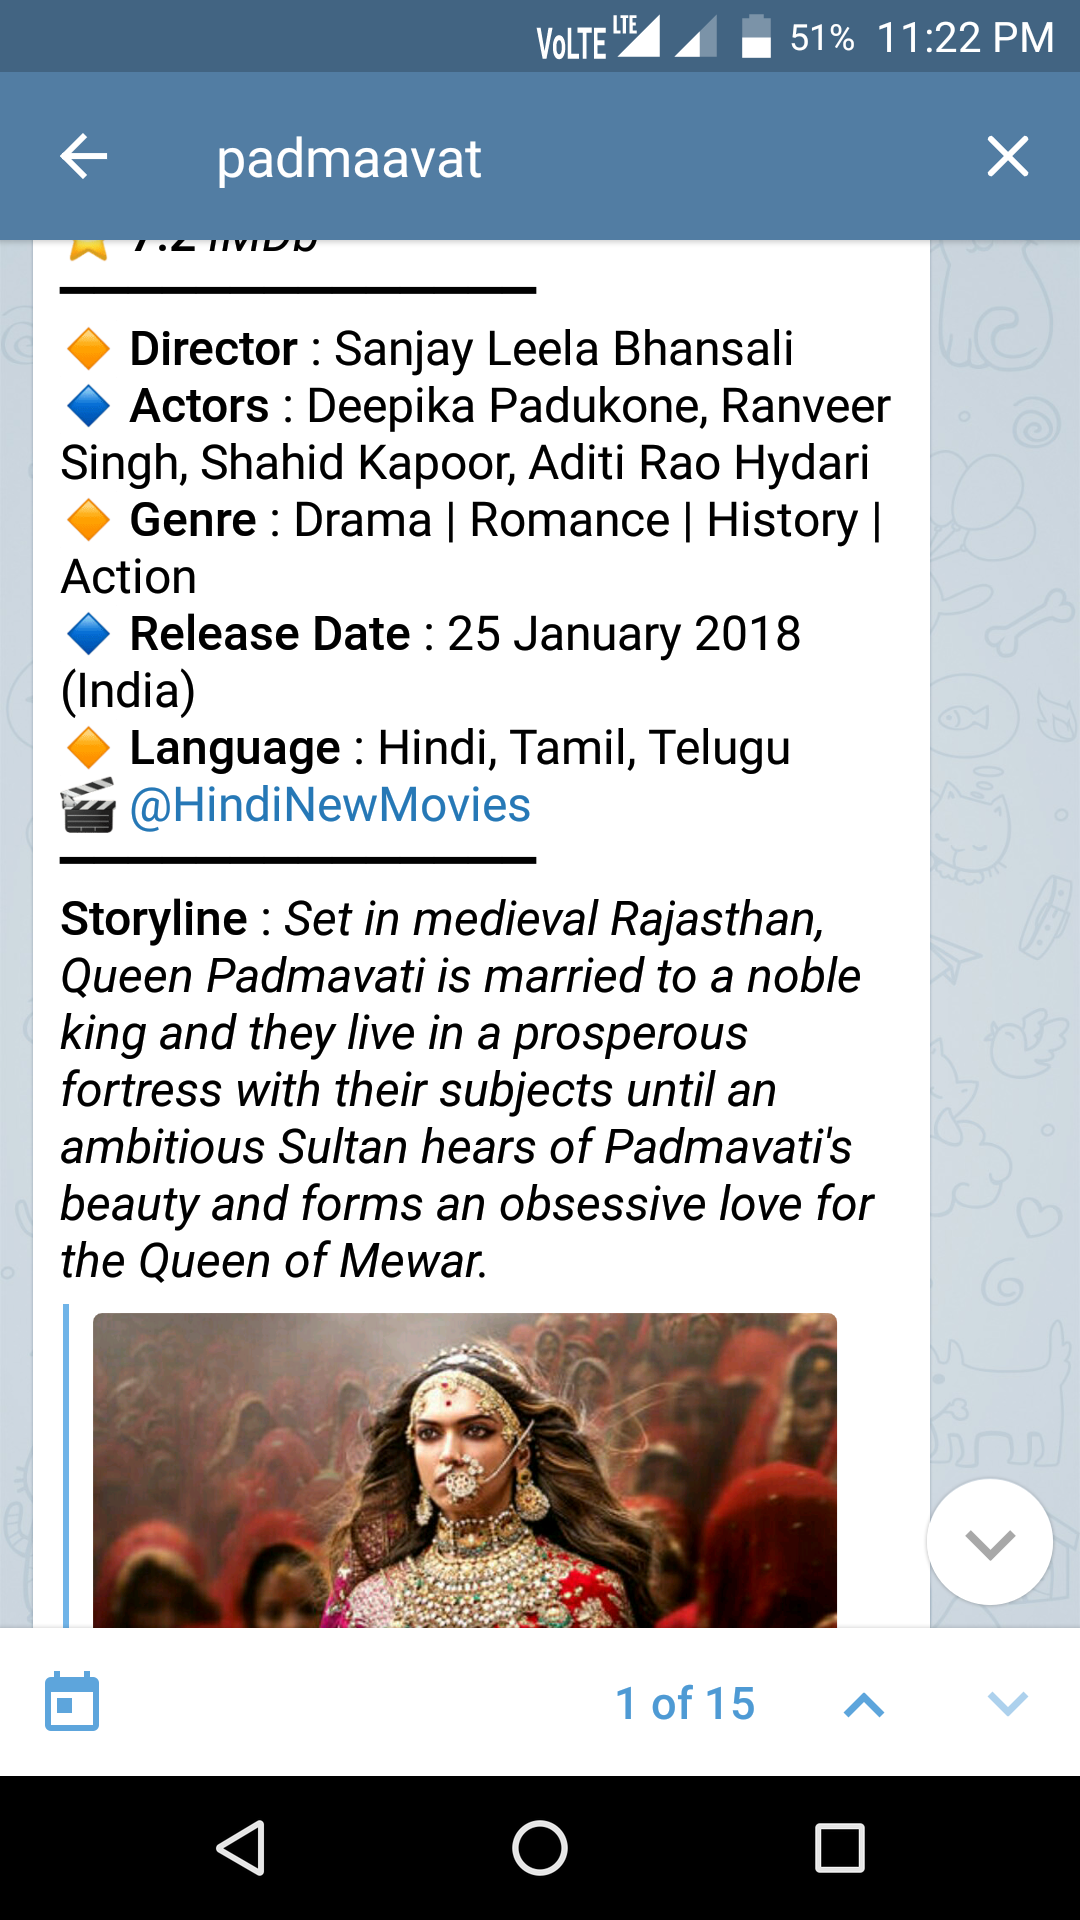 What are websites for downloading Padmavati in Hindi? - Quora